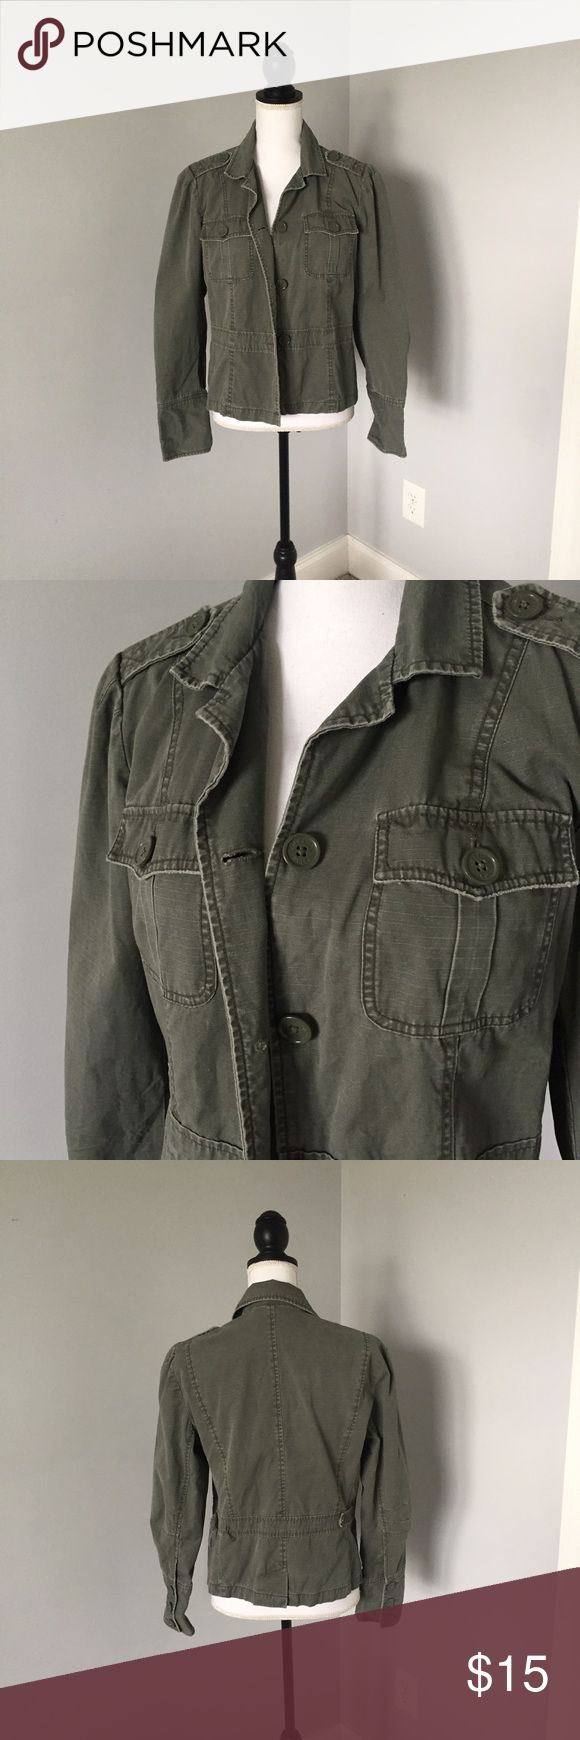 American Eagle Army Green Jacket This jacket is in excellent condition, is missing a button in the back. Has some distress on the collar. Offers welcomed! American Eagle Outfitters Jackets & Coats